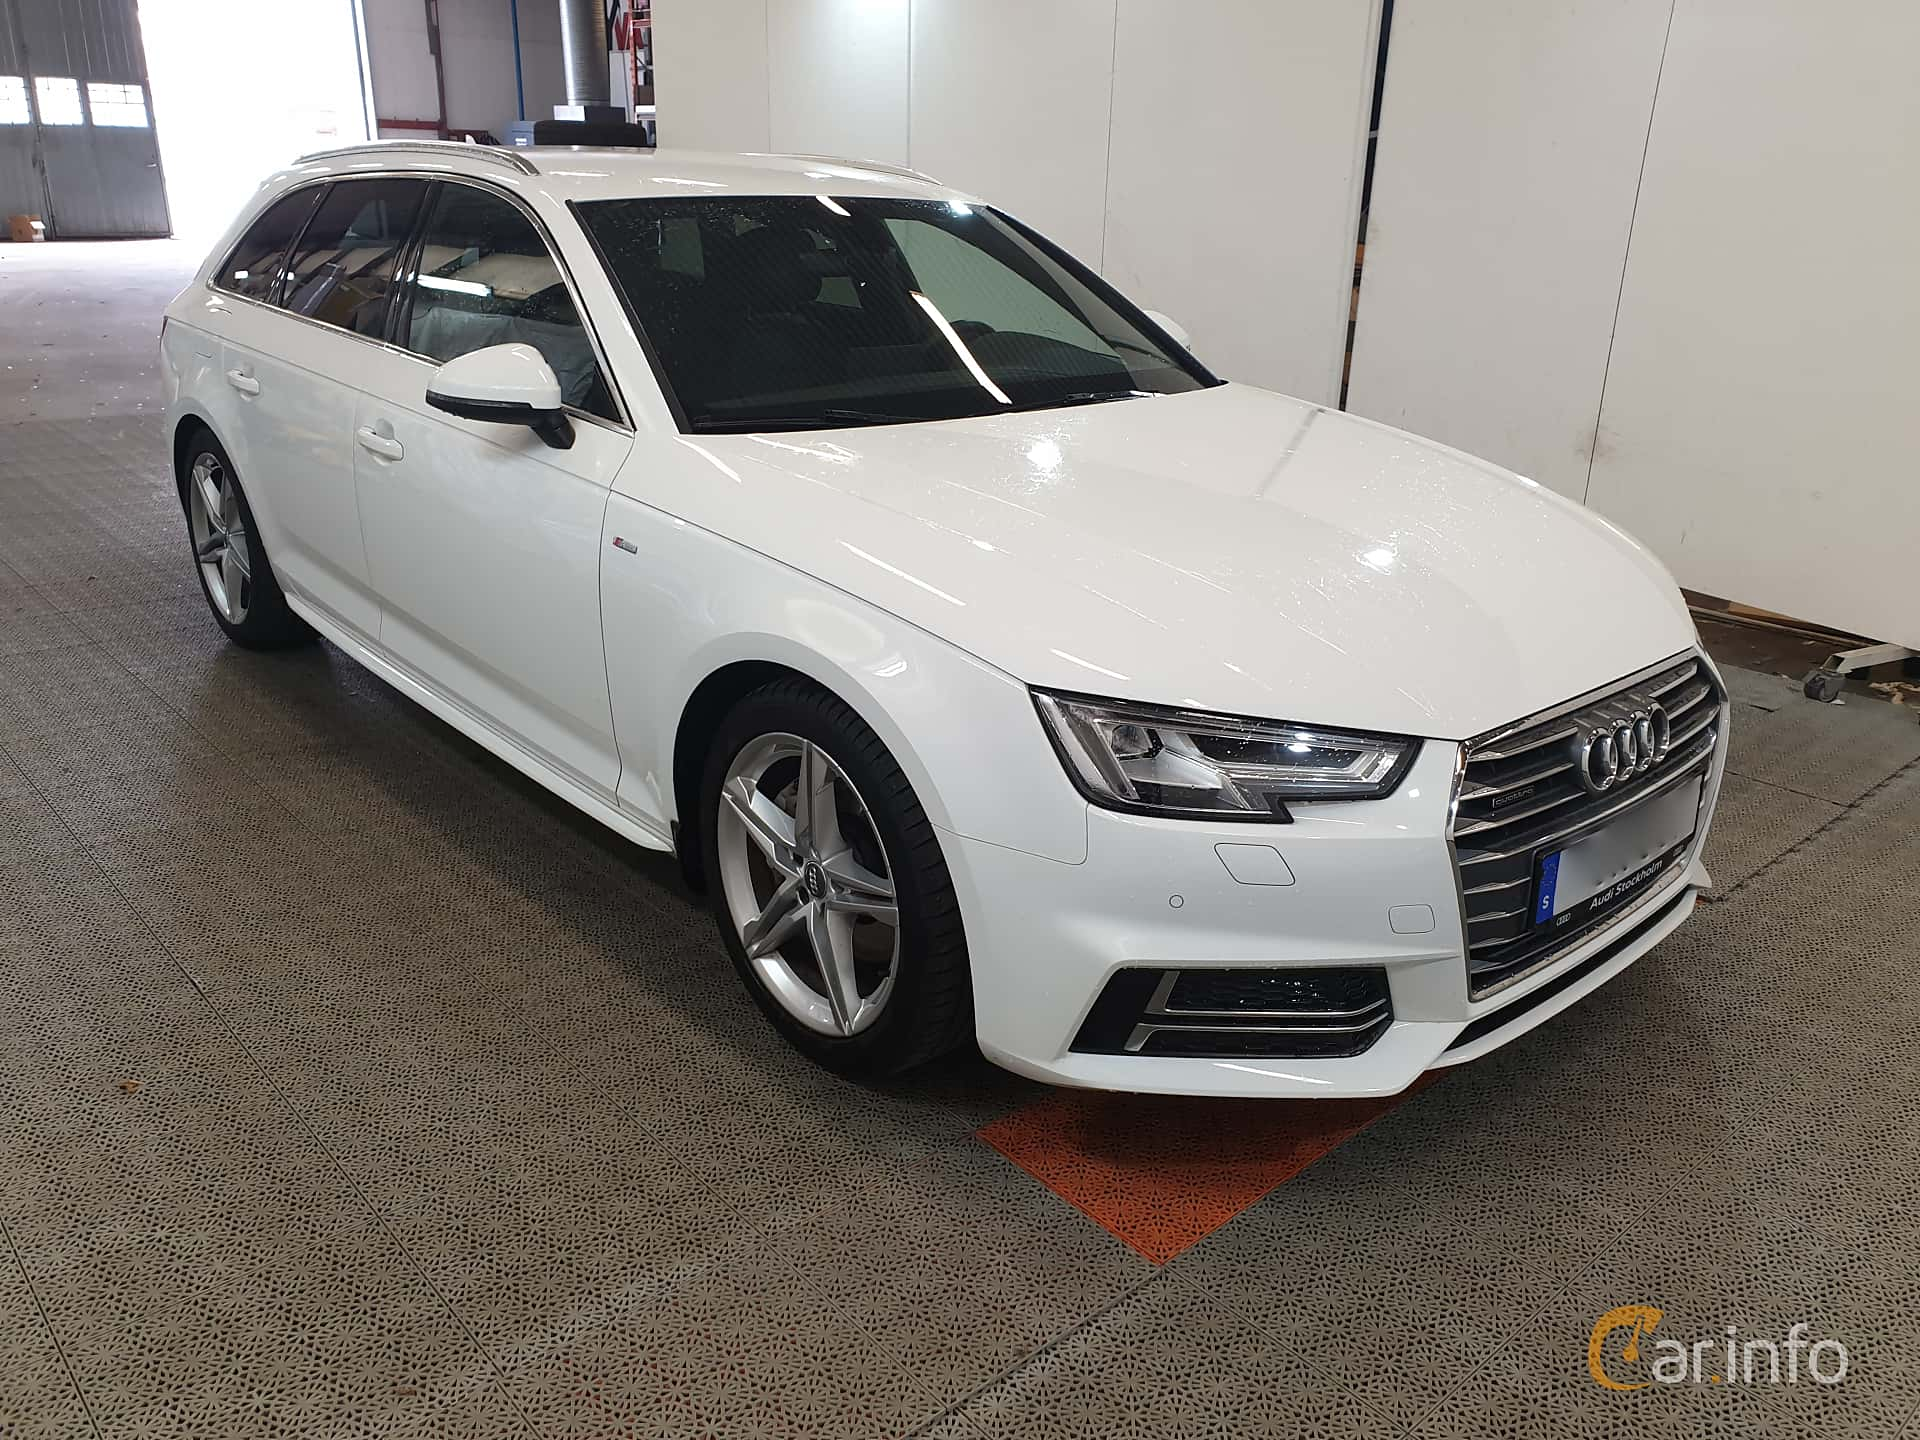 6 Images Of Audi A4 Avant 20 Tdi Quattro S Tronic 190hp 2018 By